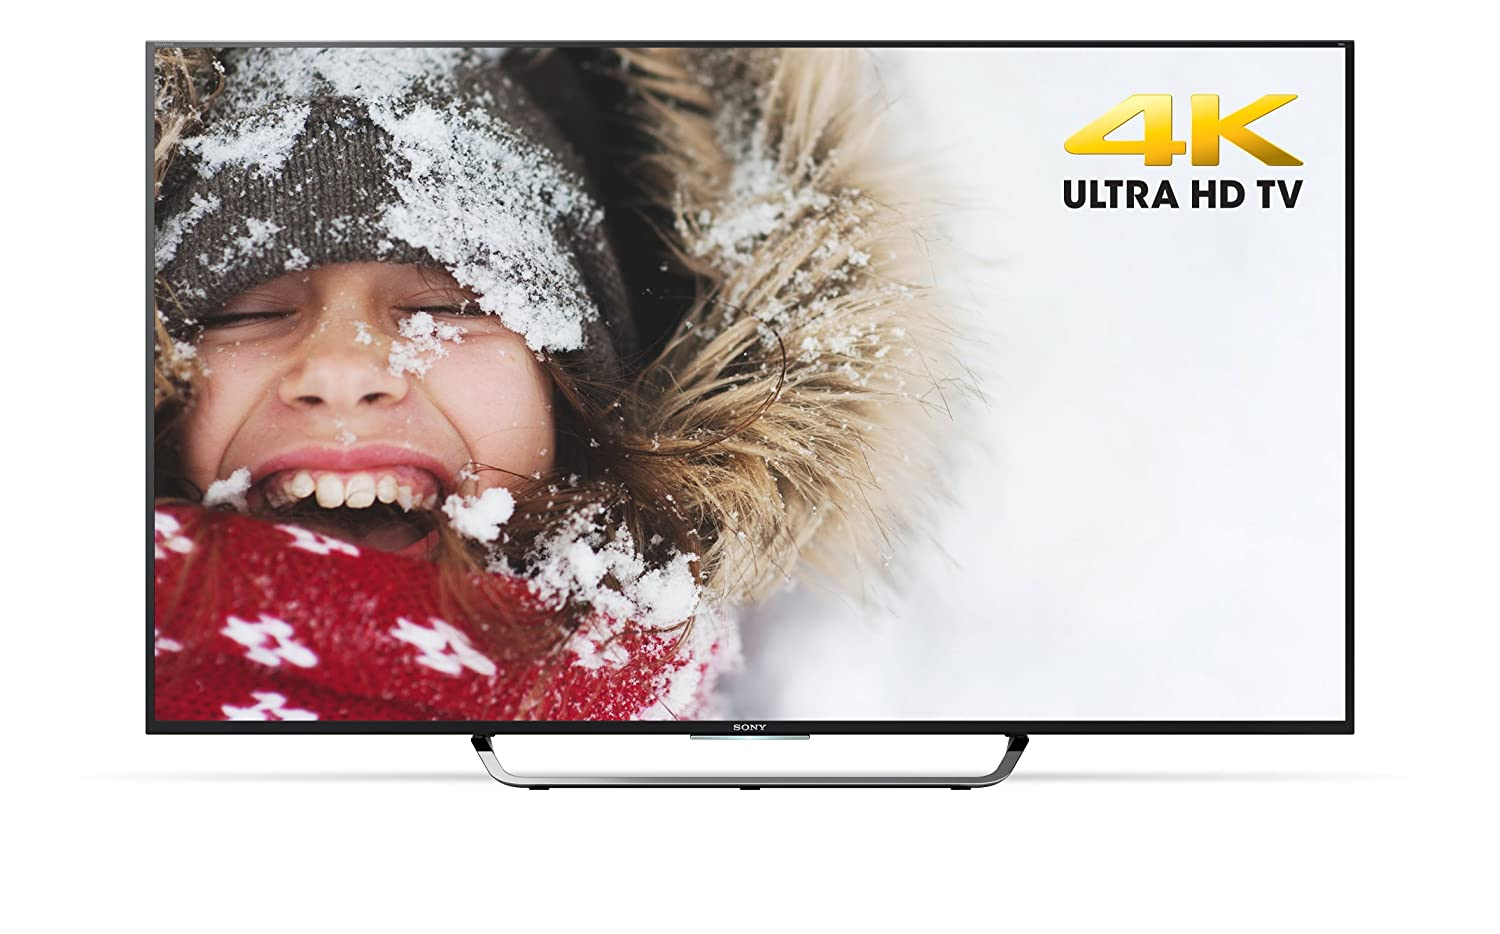 How do you estimate the physical dimensions of a 65-inch television?